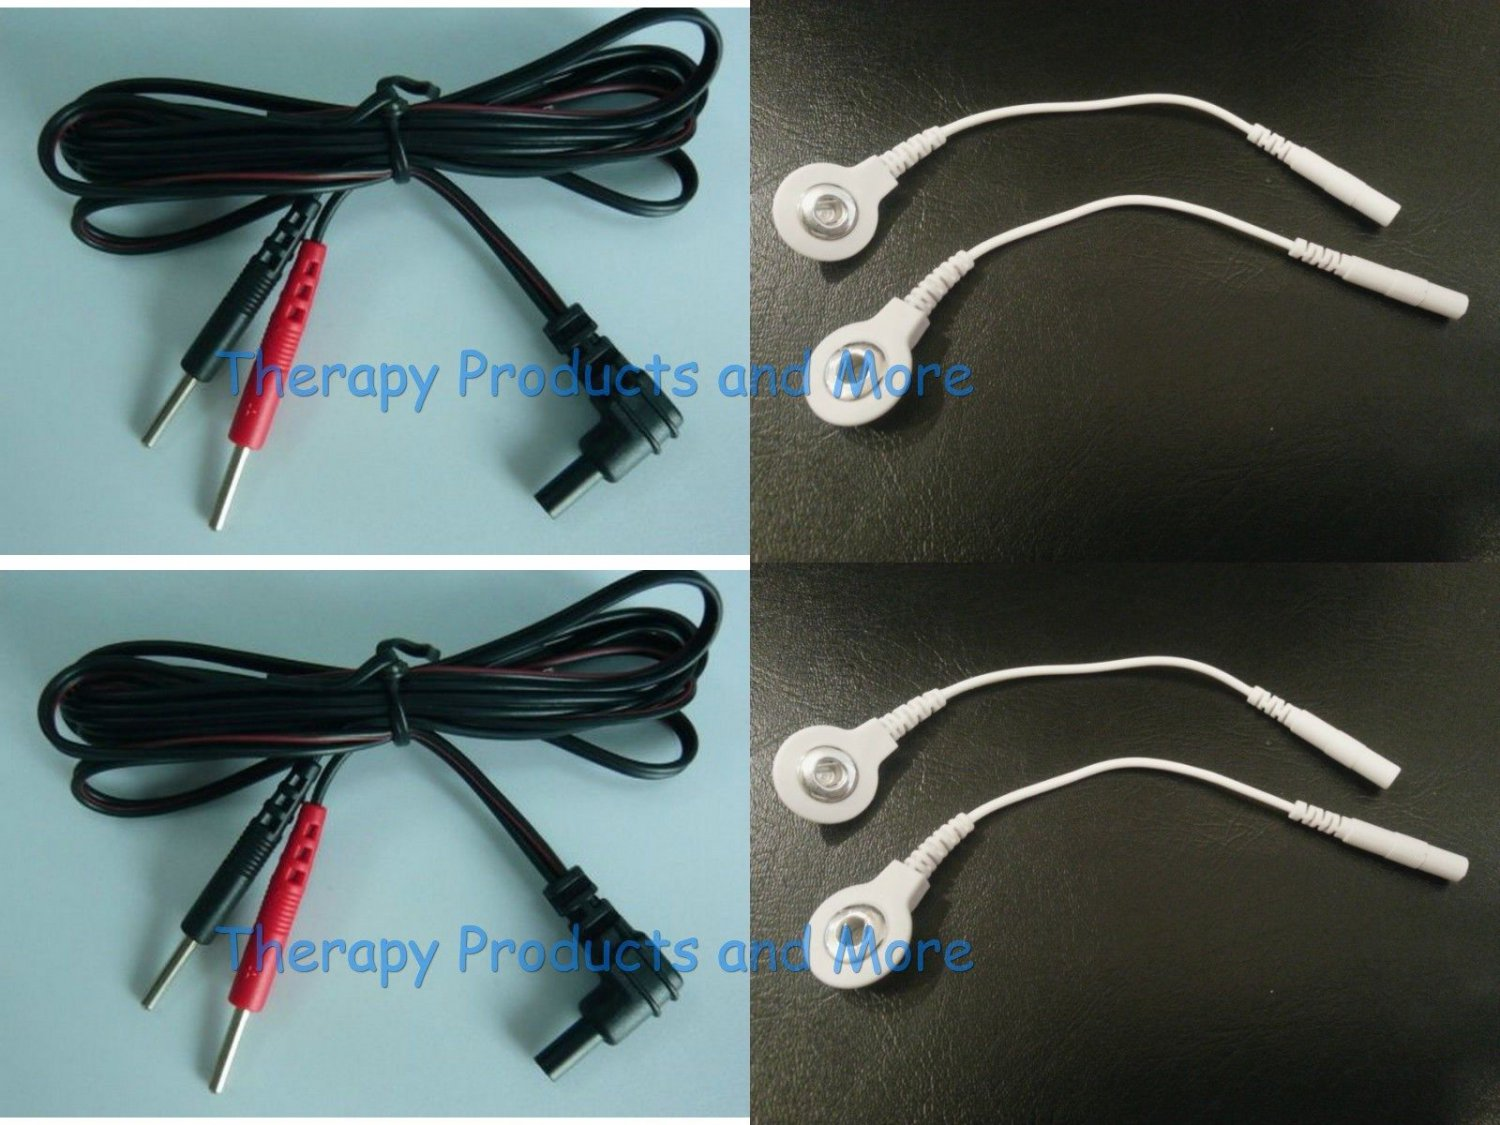 Electrode Massage Cables for AURAWAVE Massager-Use Snap OR Pin Electrodes Pads